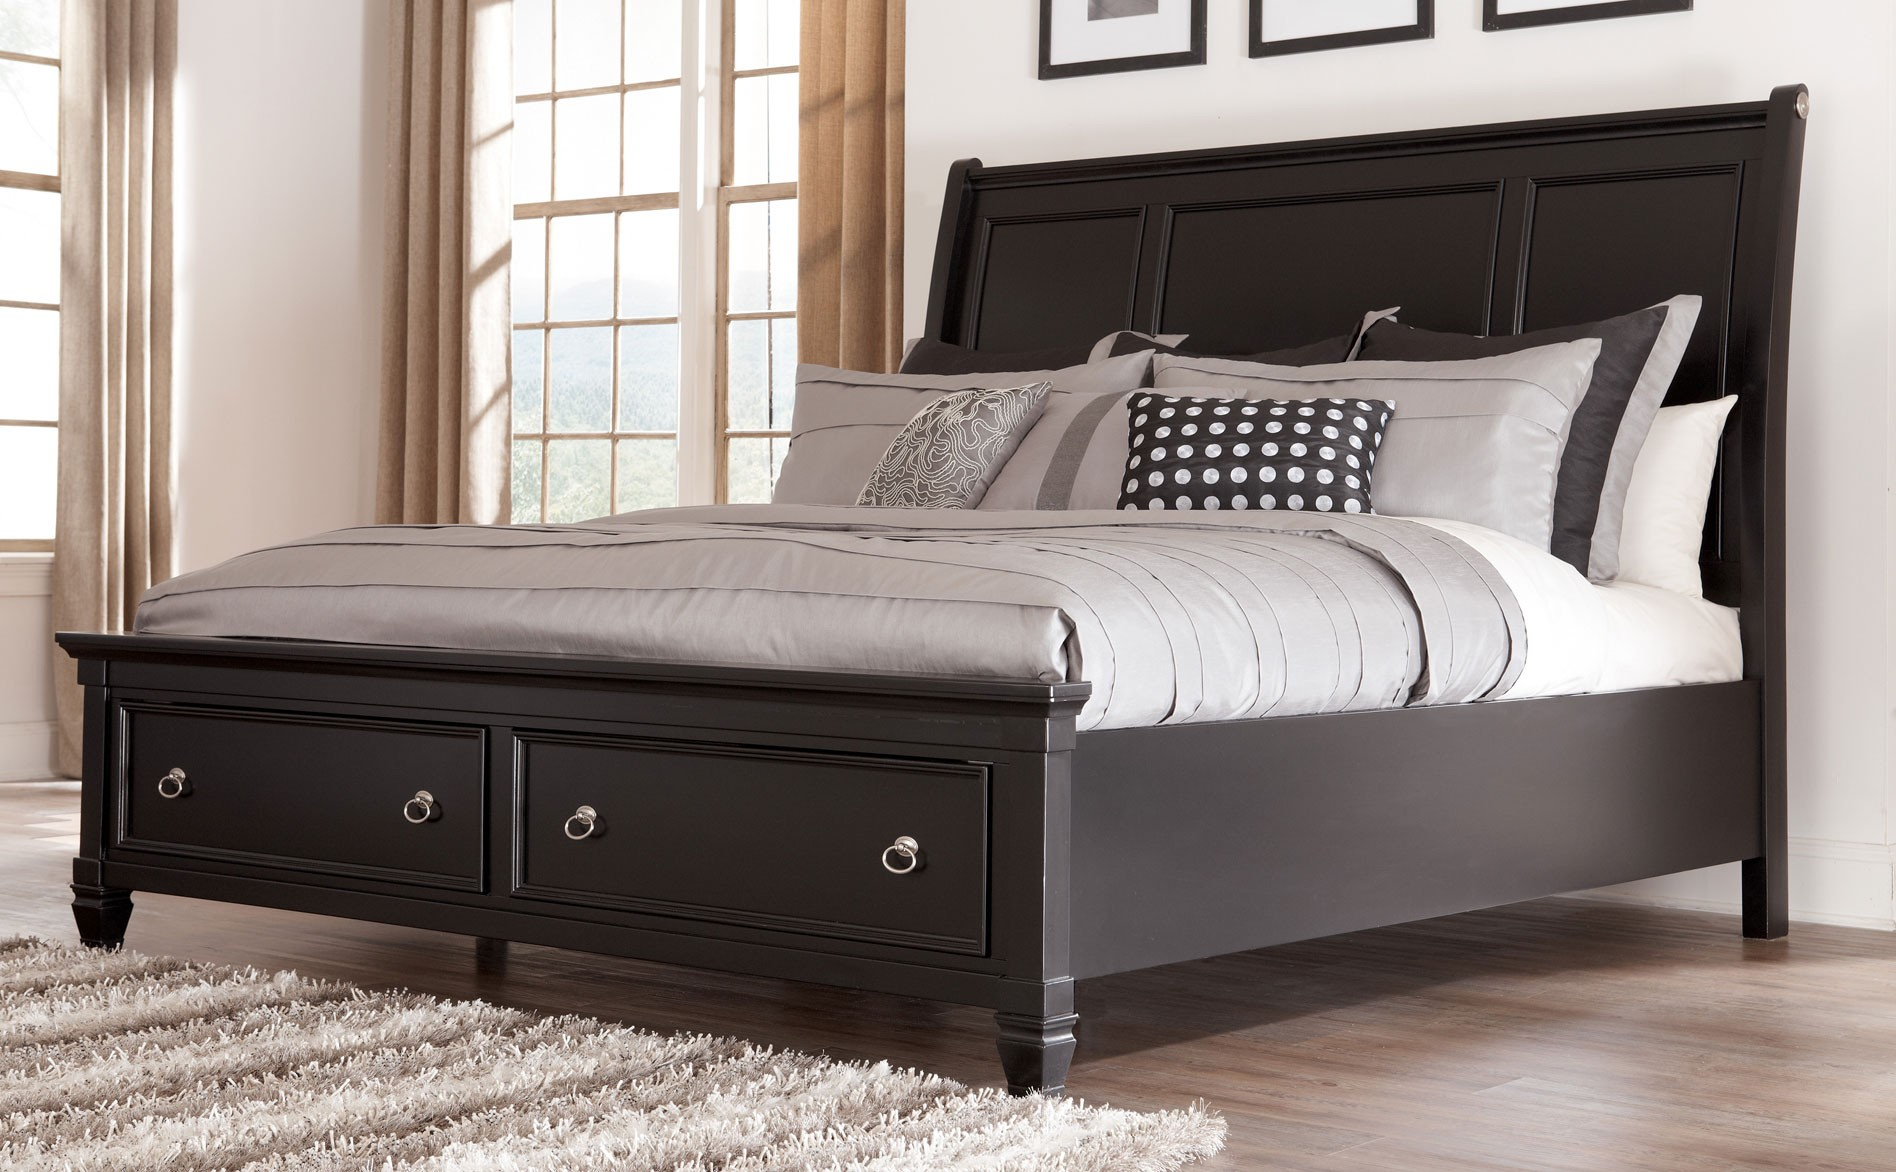 Bed Headboards for Sale | Pottery Barn Sleigh Bed | King Headboard Sale